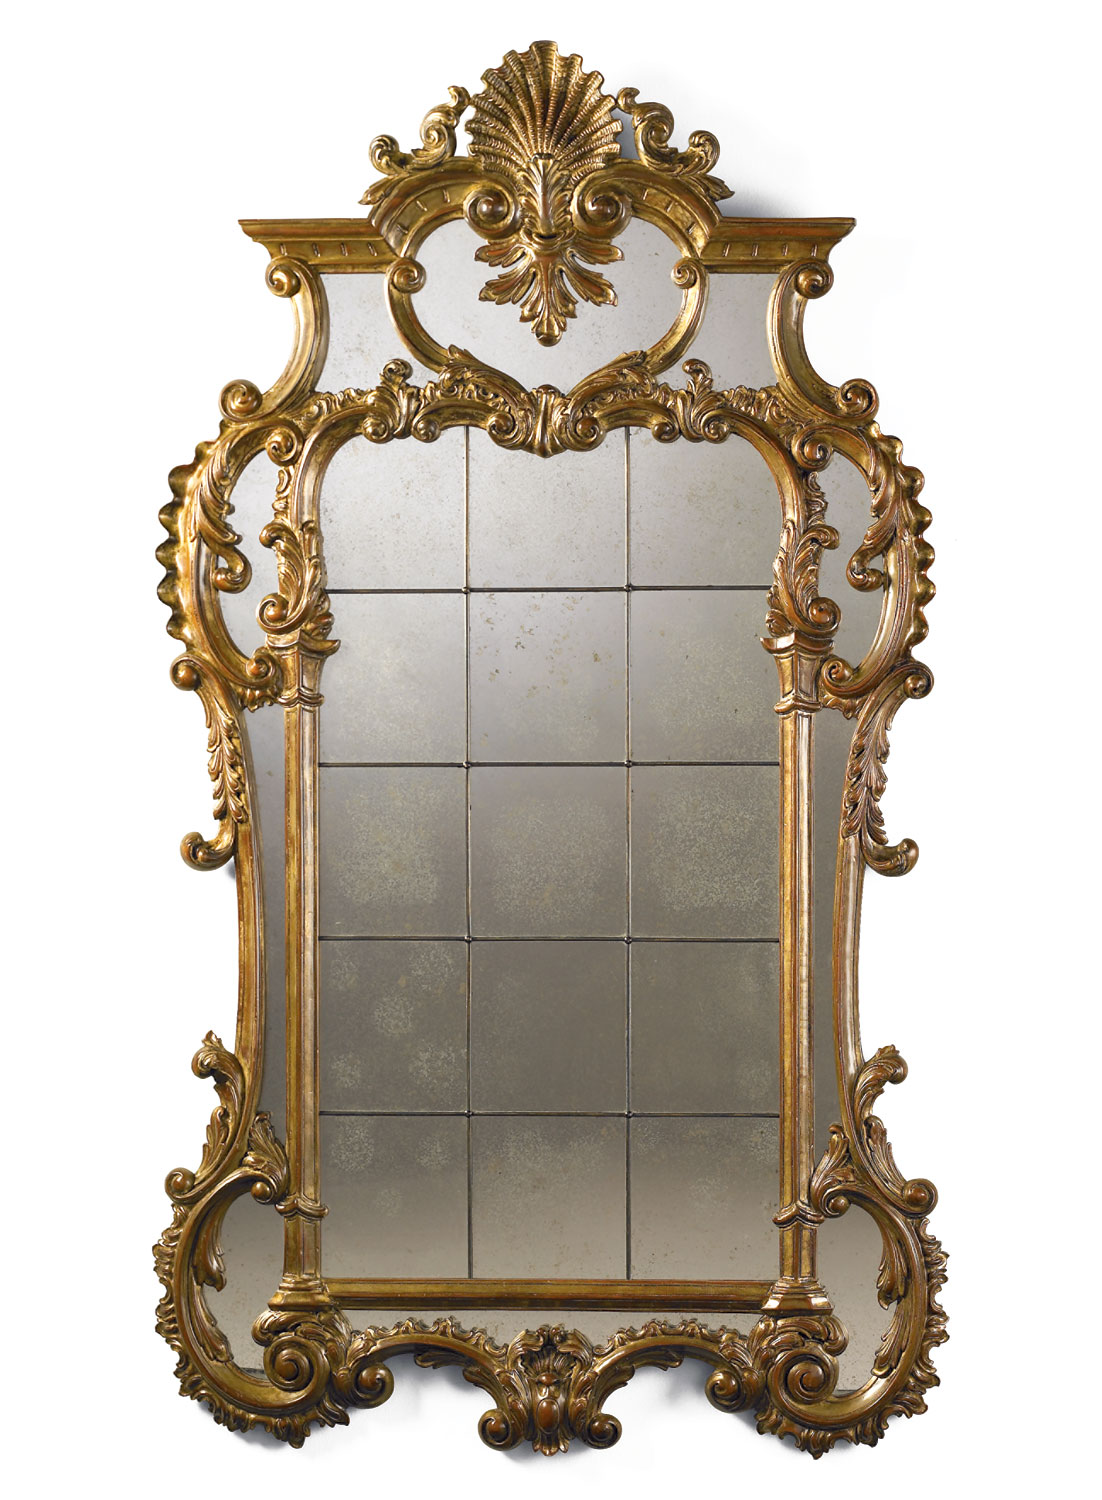 Hand carved giltwood wall mirror